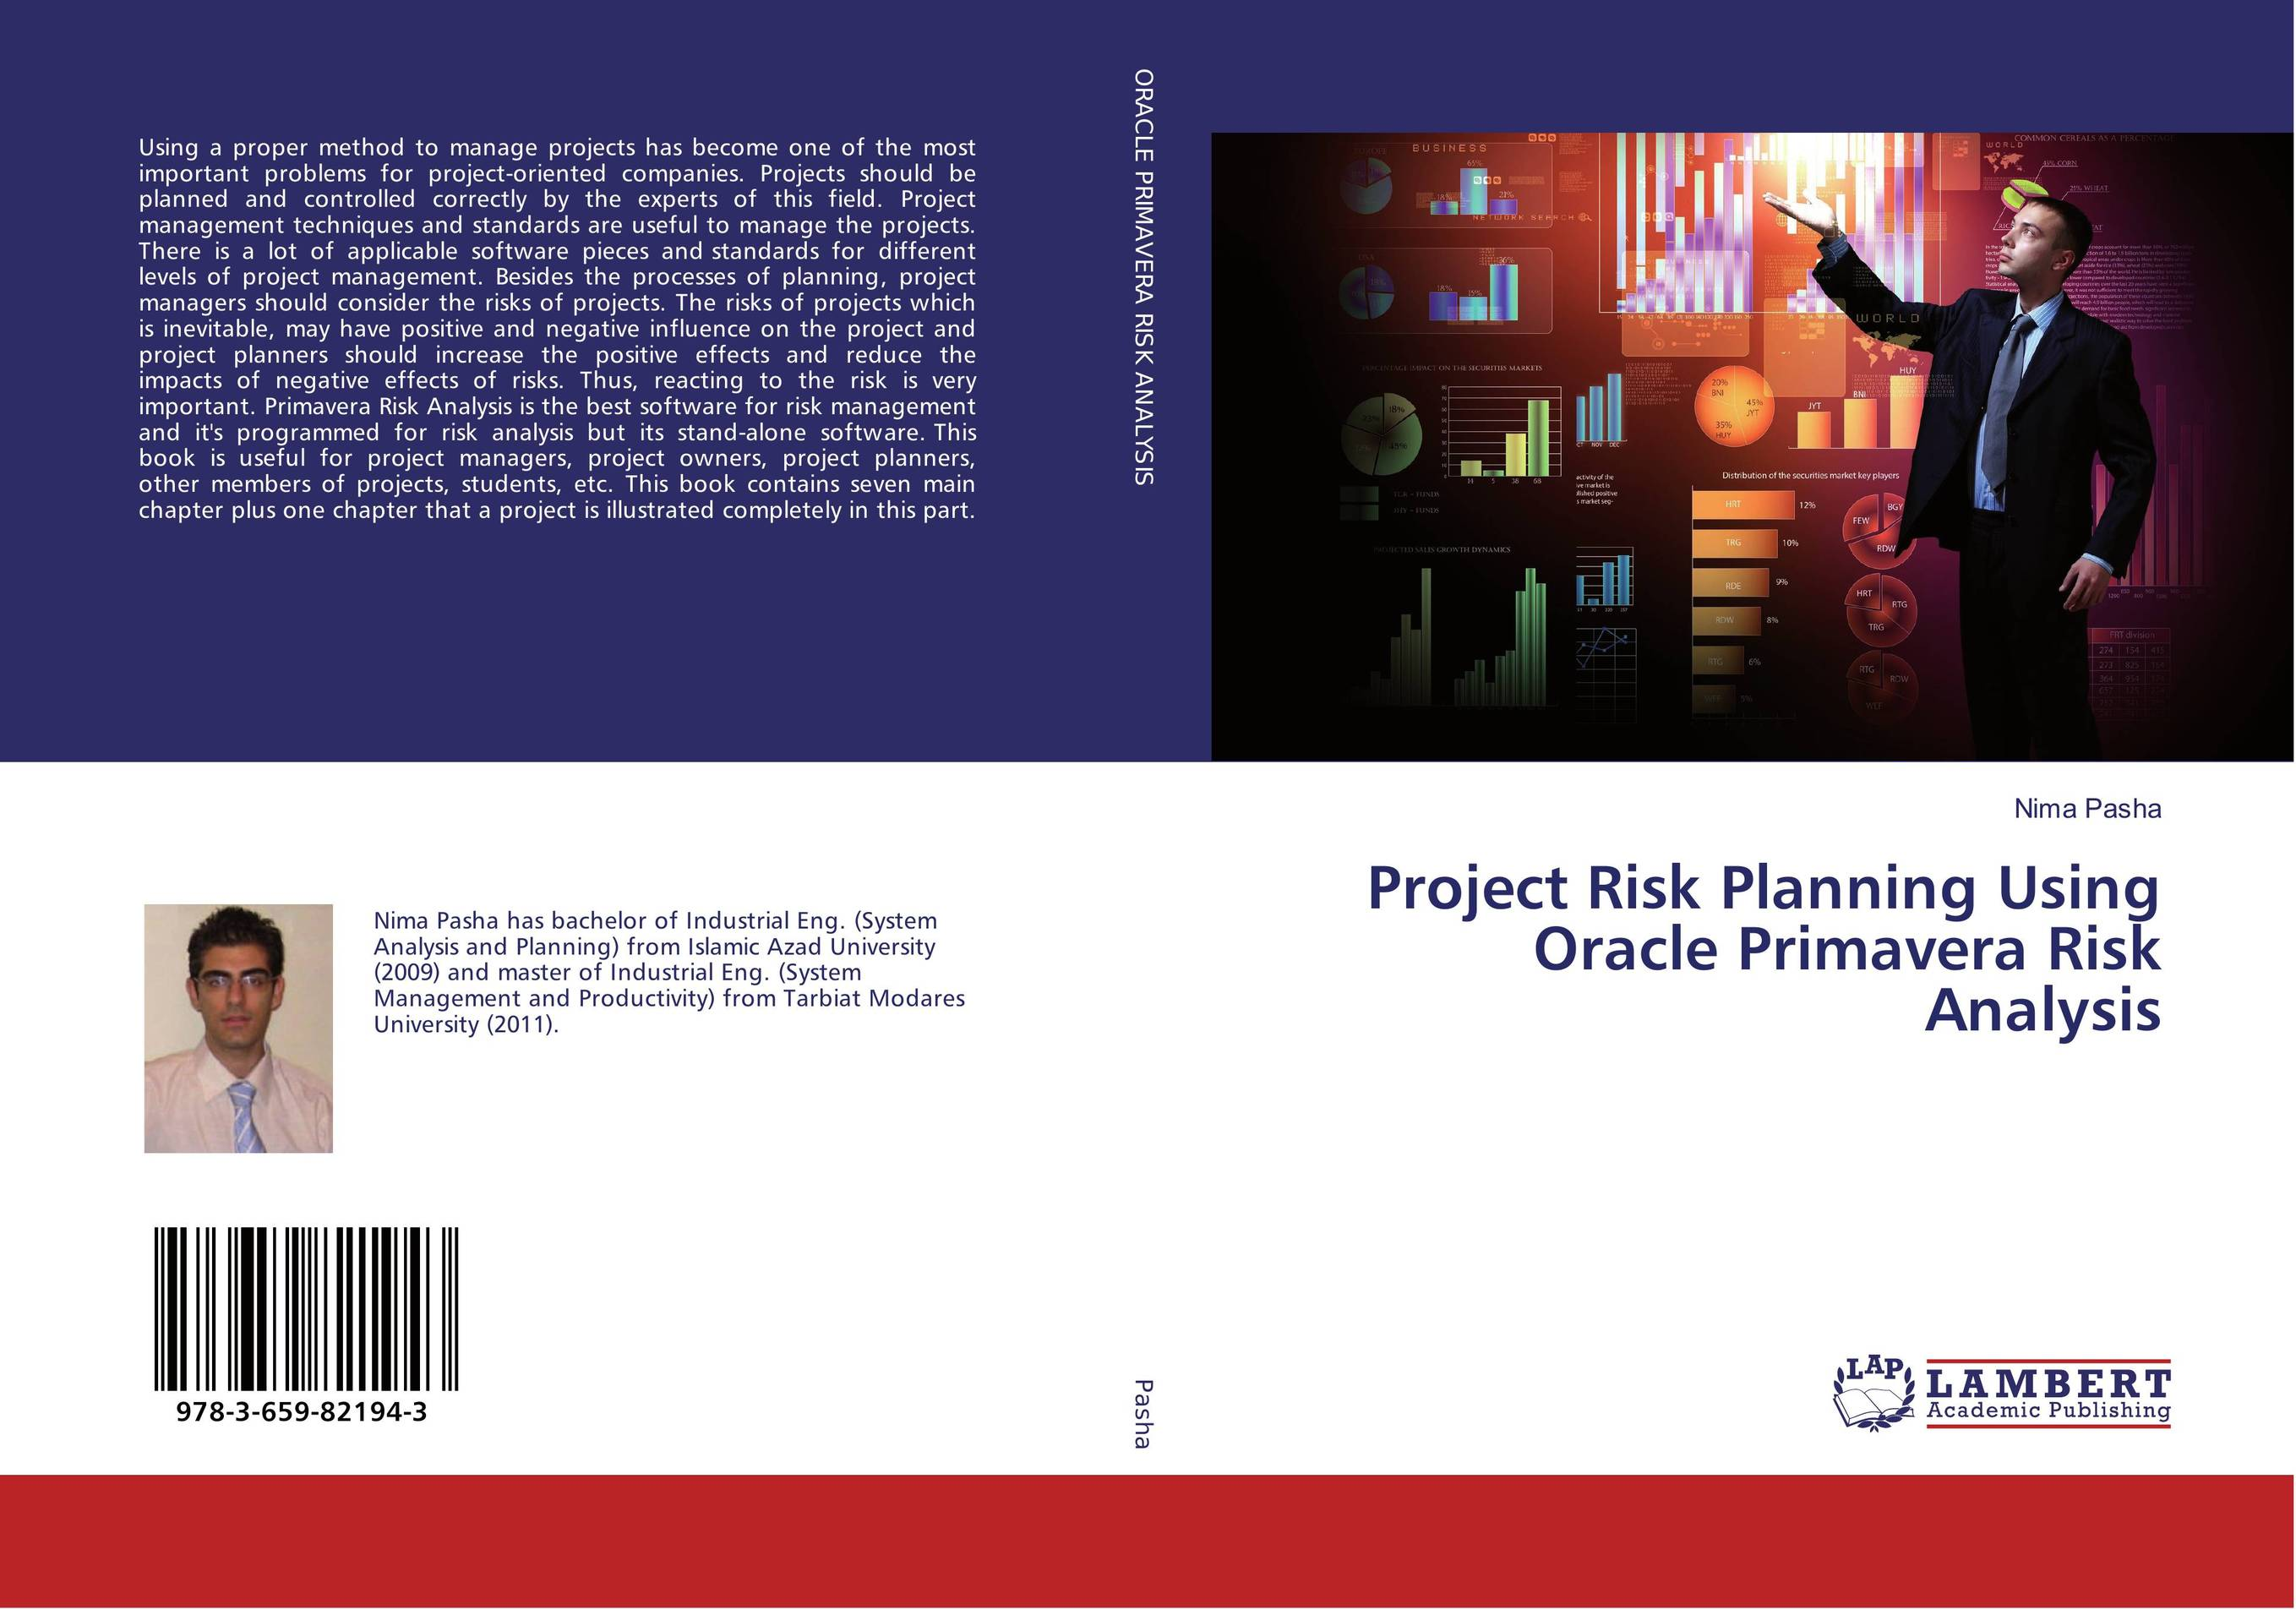 Project Risk Planning Using Oracle Primavera Risk Analysis yuri raydugin project risk management essential methods for project teams and decision makers